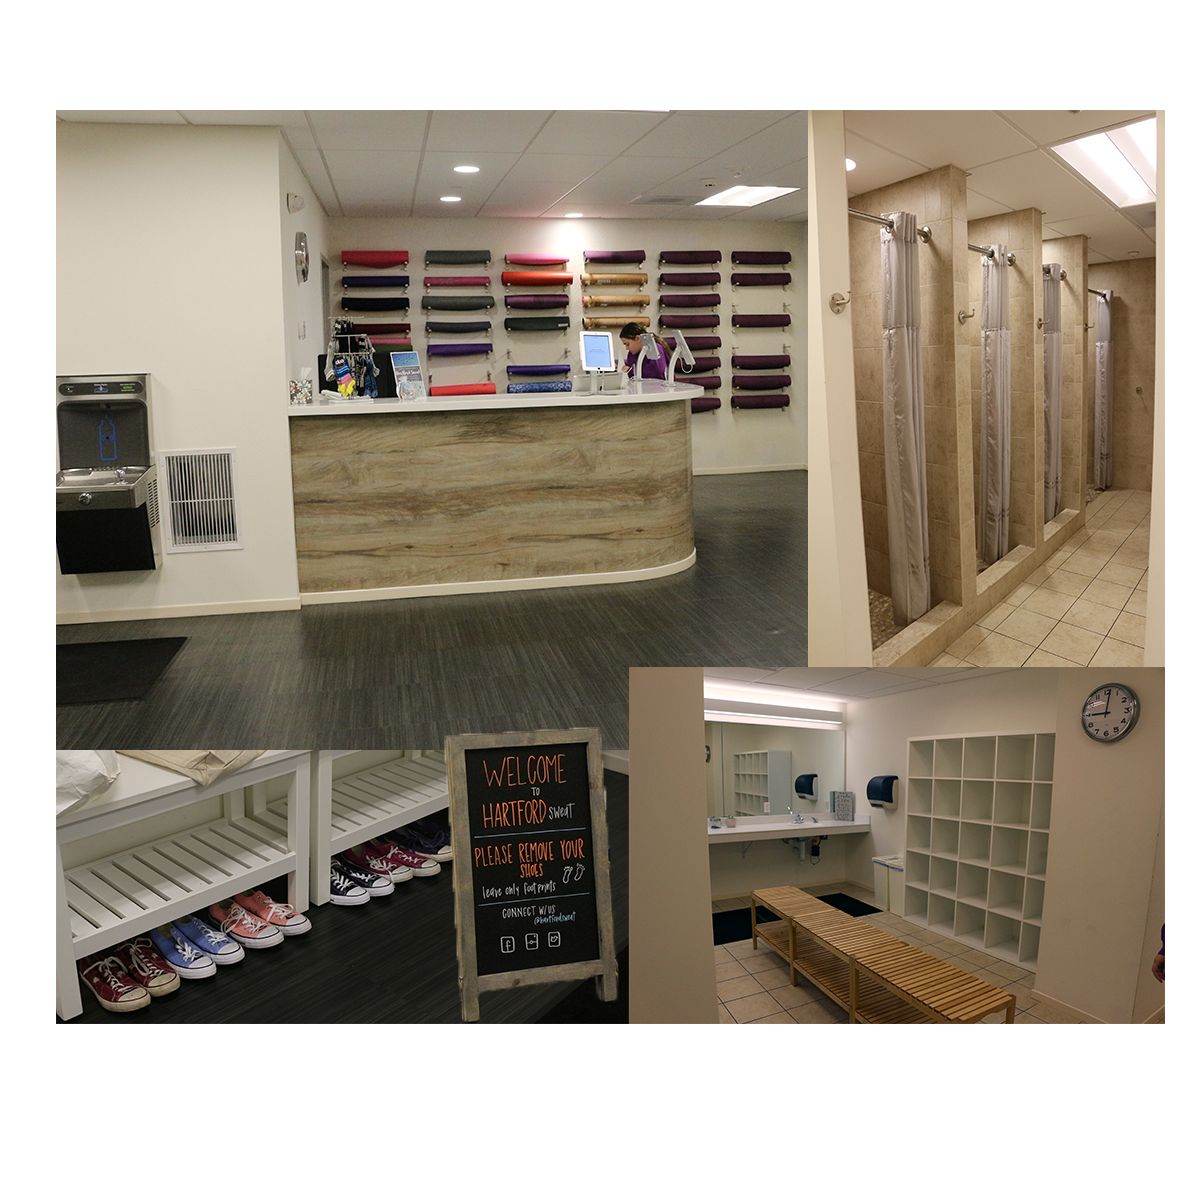 Coming and Going... - Convenient self-check-in at the front deskMat & towel rental available Service to